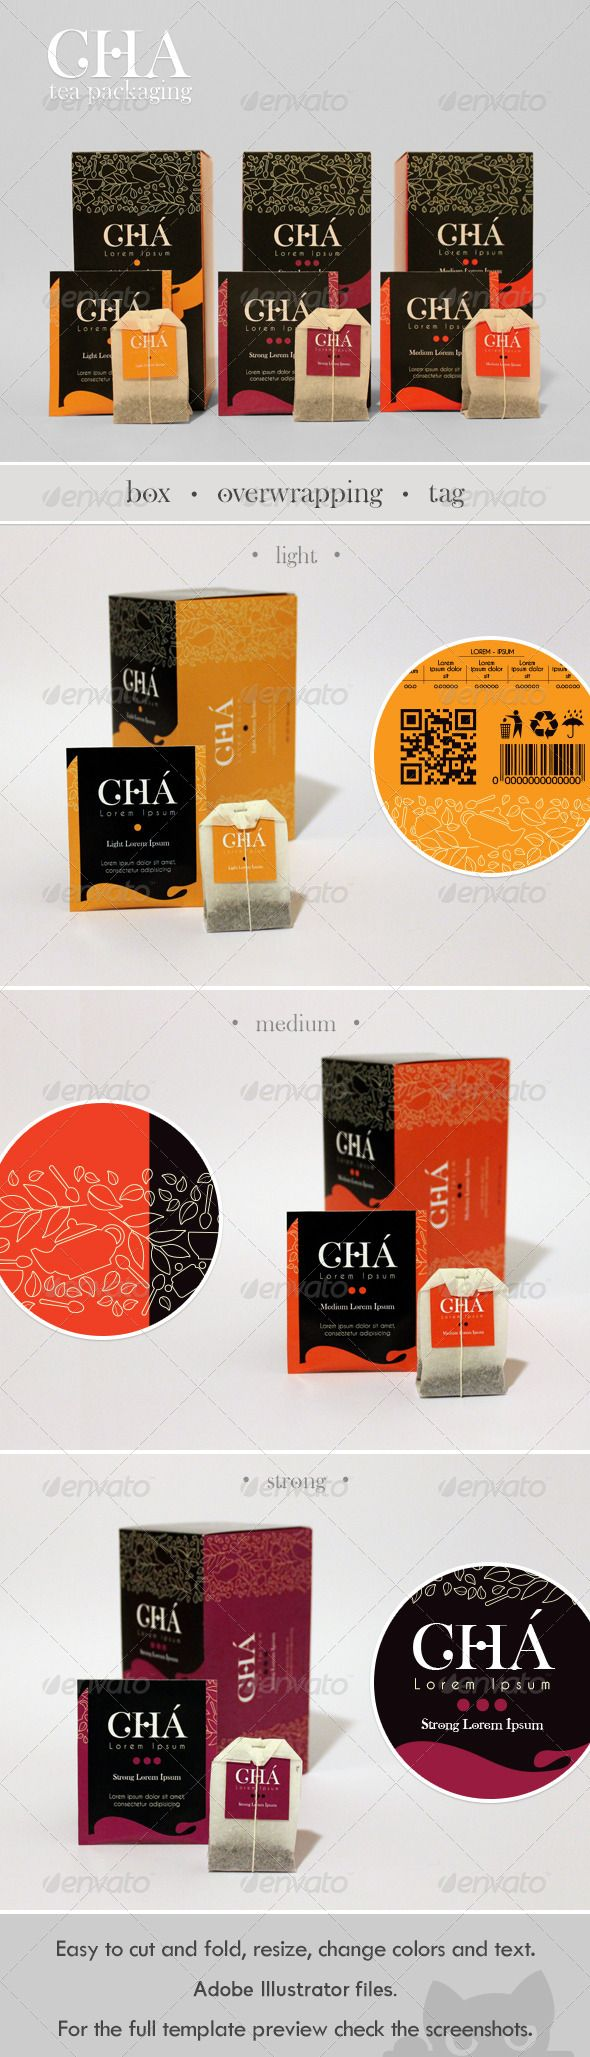 Classic Tea Packaging Design